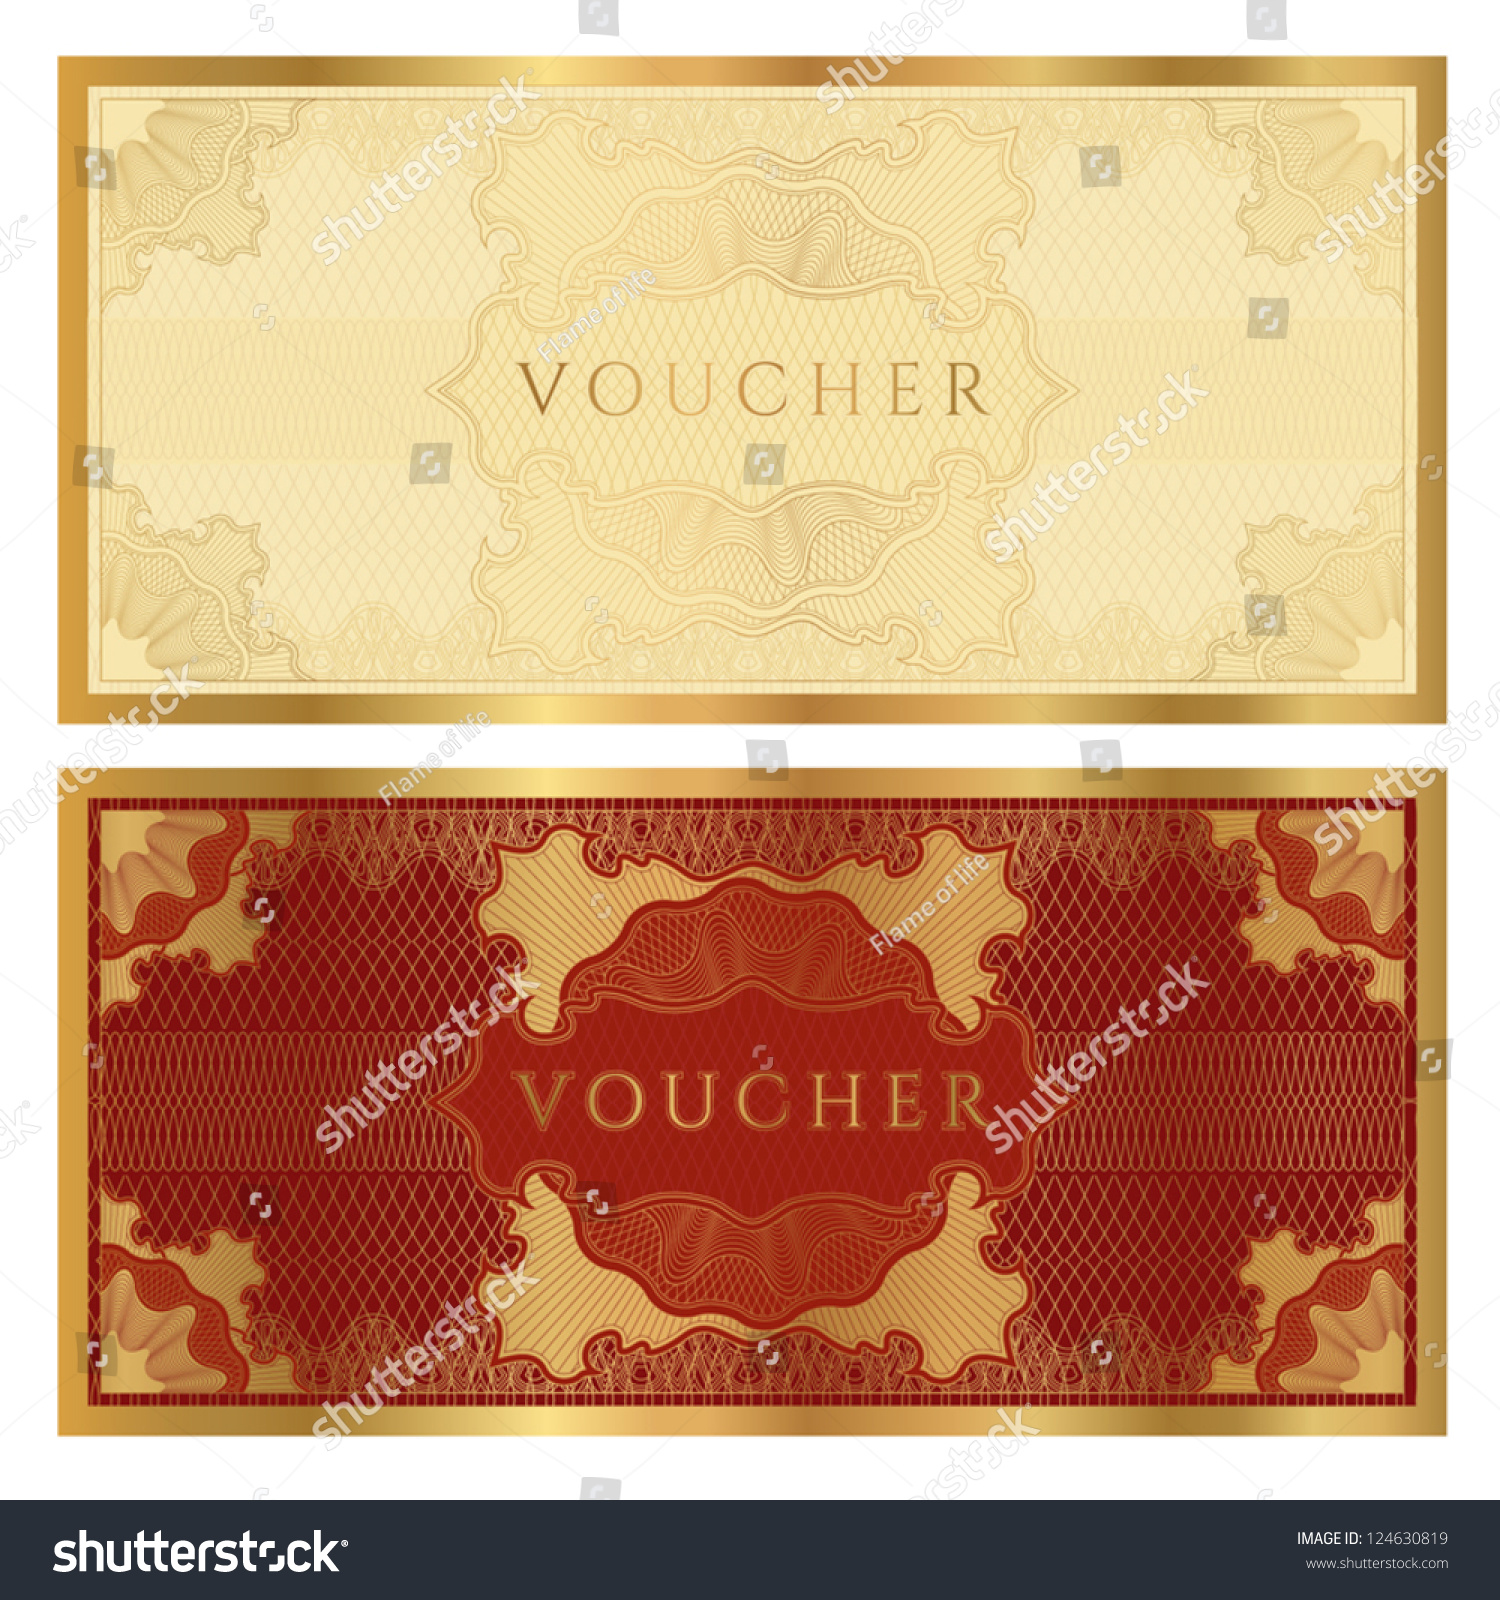 Golden Voucher Template Guilloche Pattern Watermarks Vector – Template for a Voucher